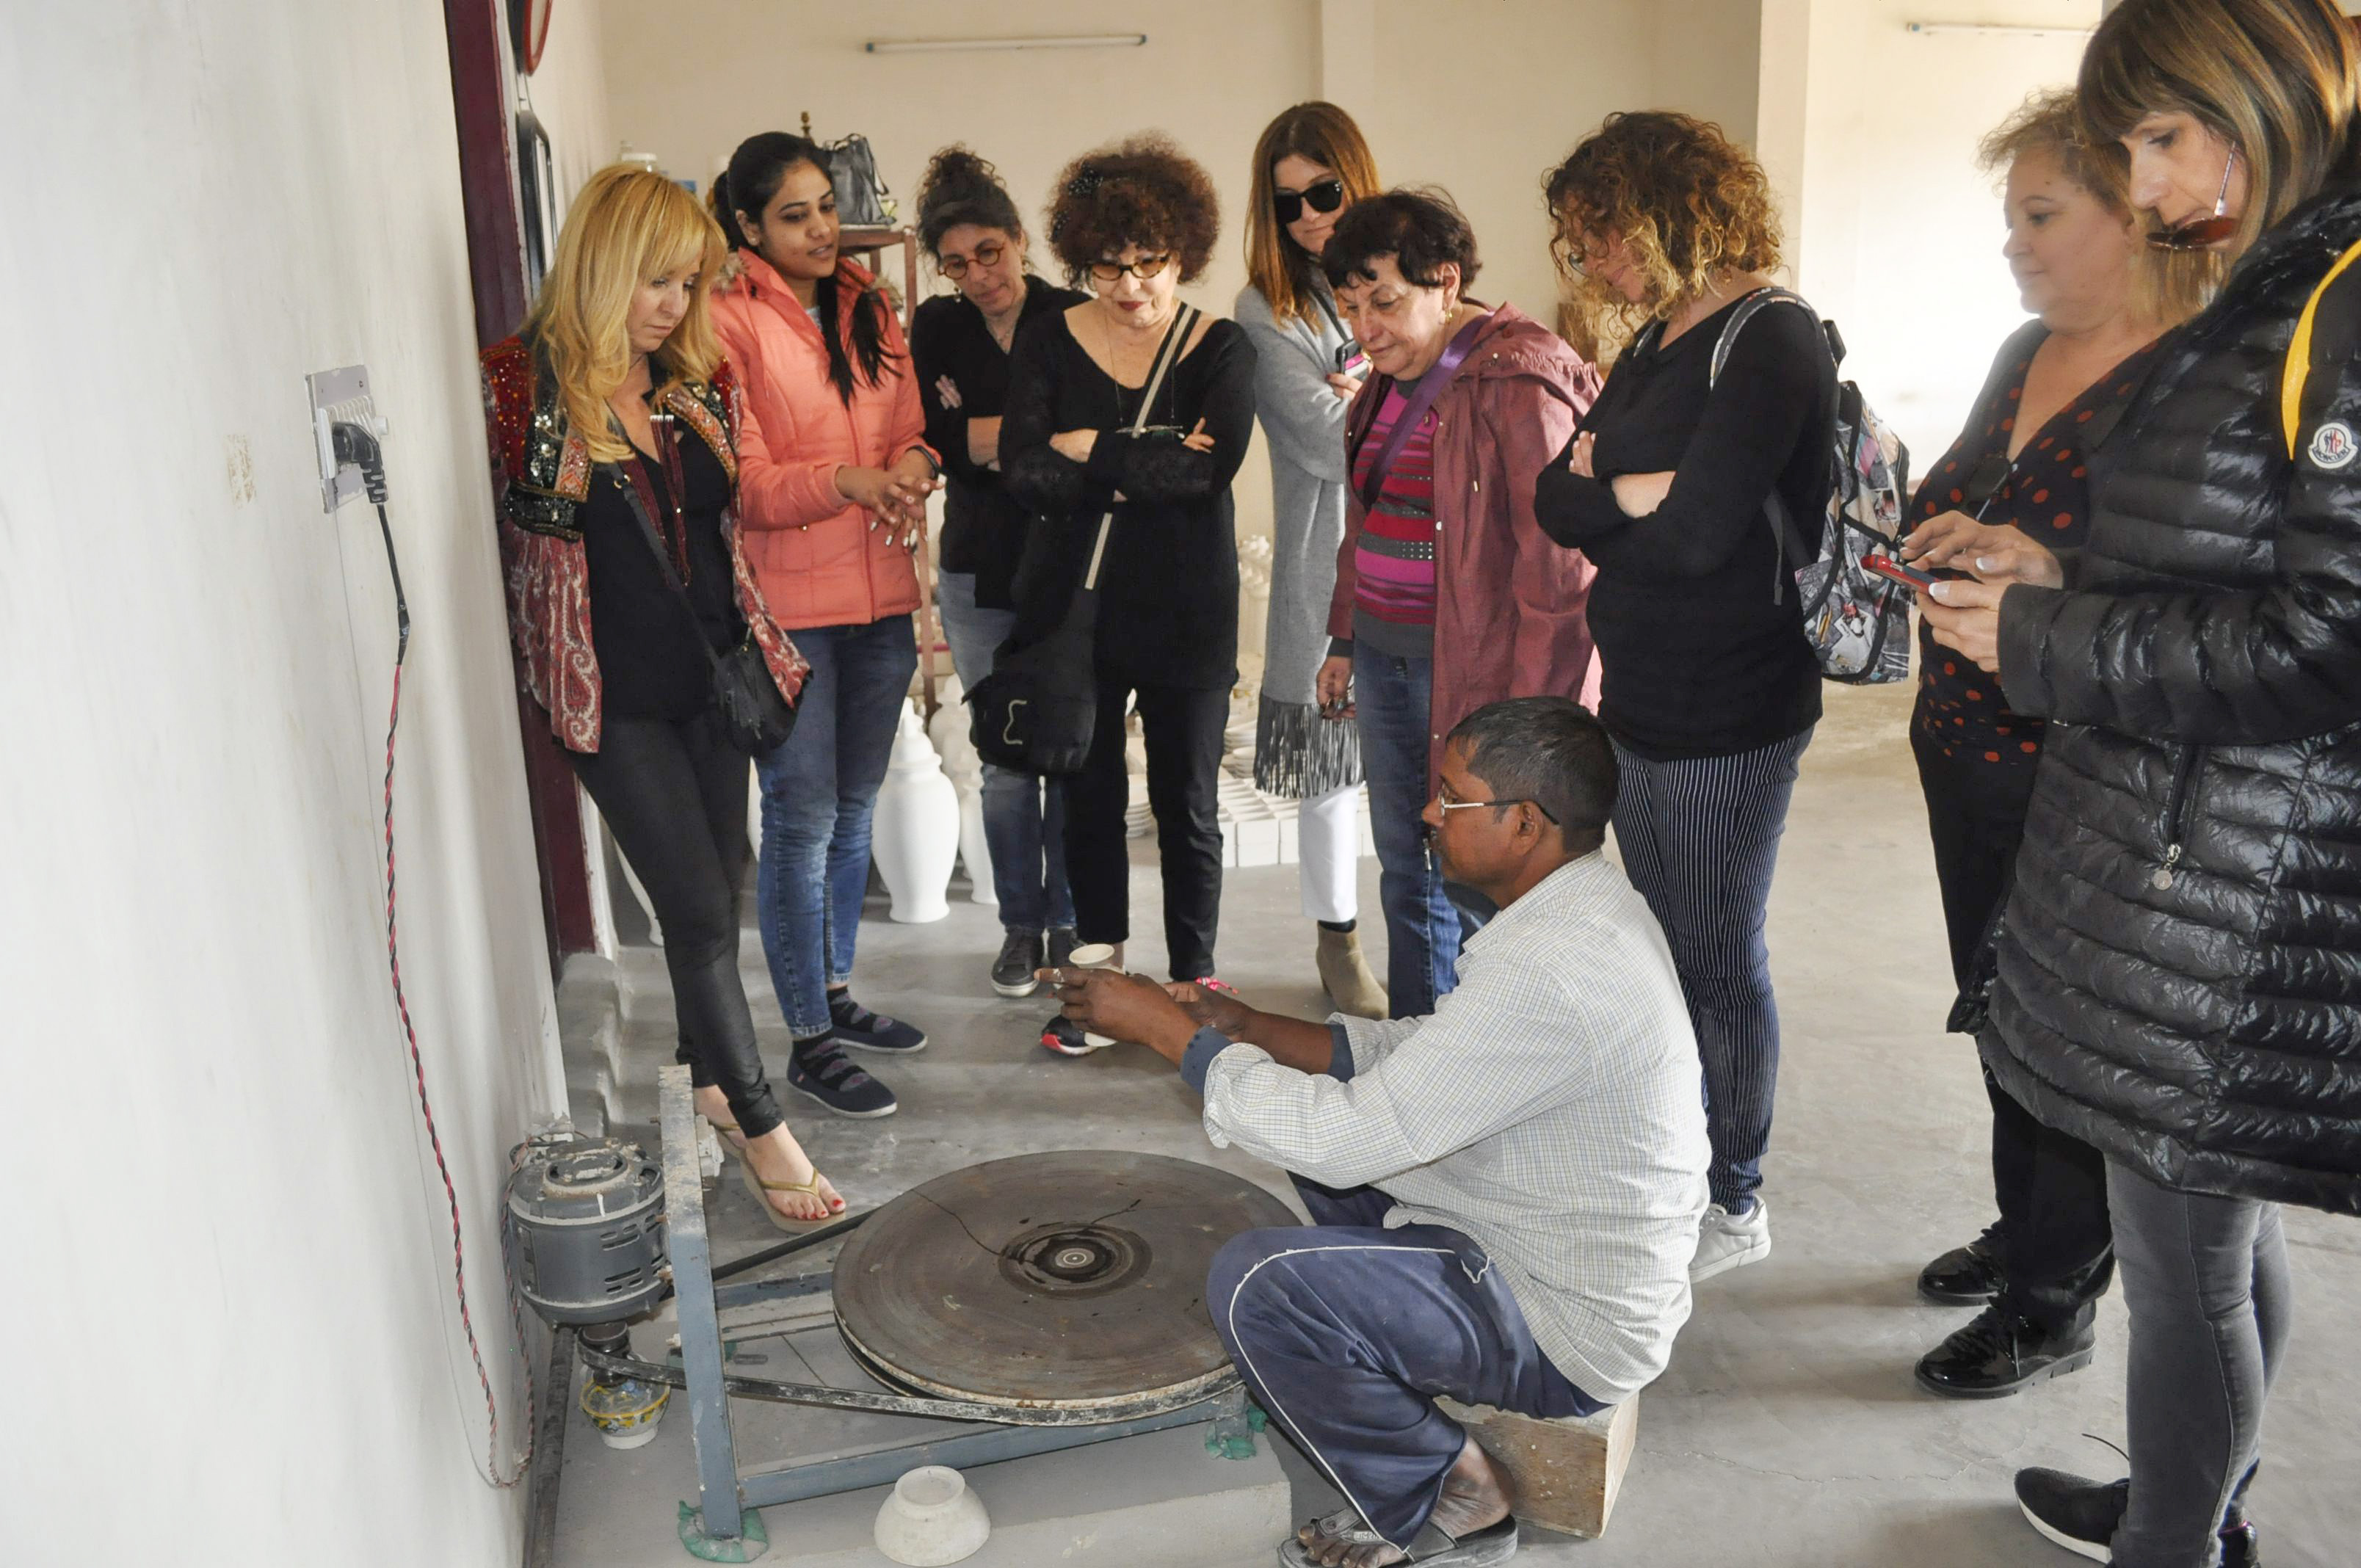 Group was engaged to see how products are made on pottery wheel